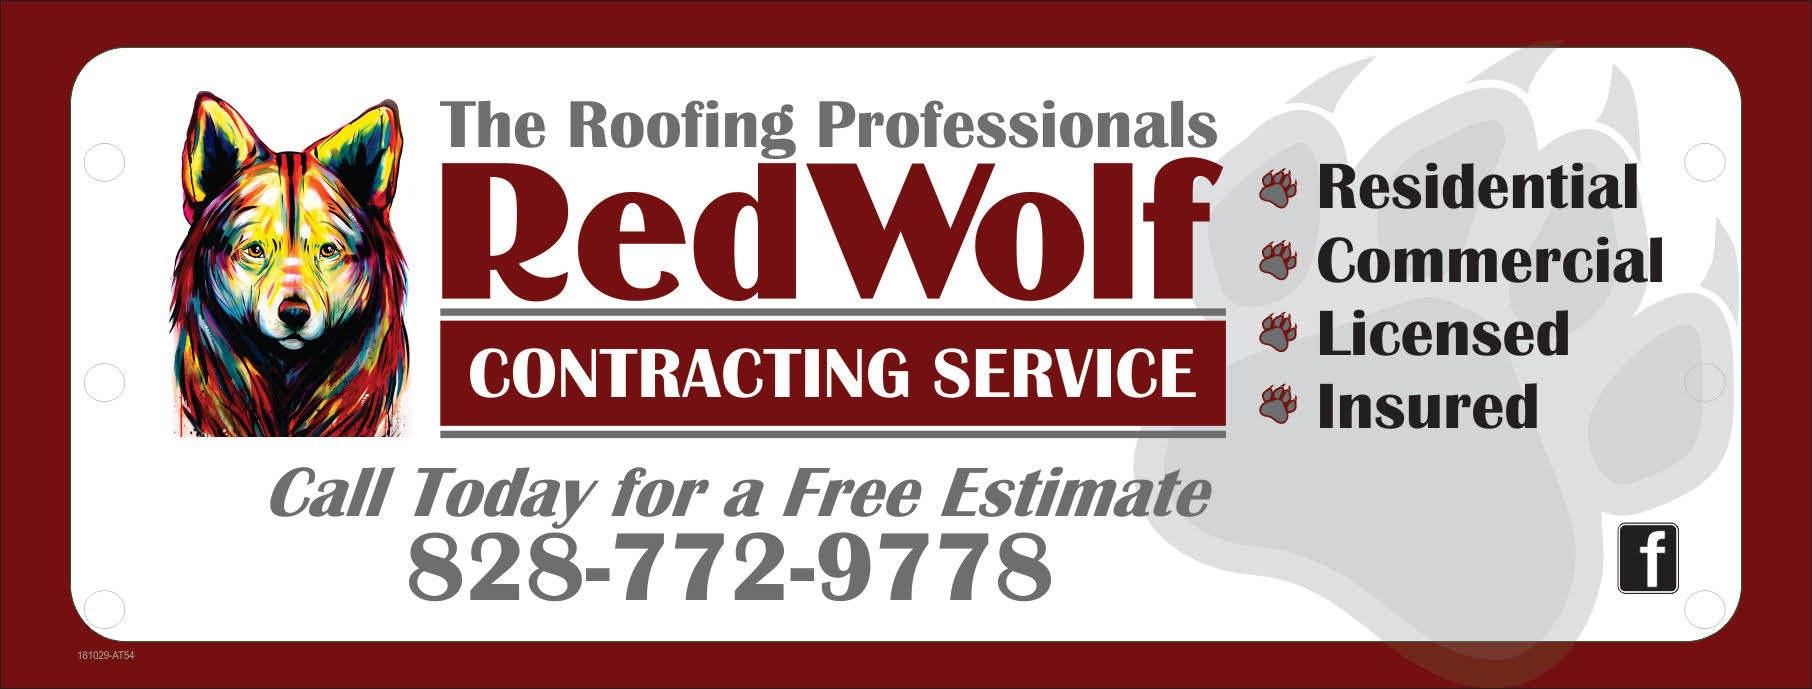 Looking for a trusted local contractor to take care of all your roofing needs? Call Matt of RedWolf Contracting Service at (828)772-9778 to set up your free roof evaluation and estimate. Visit their website  nc-roofers.com  to see their work.